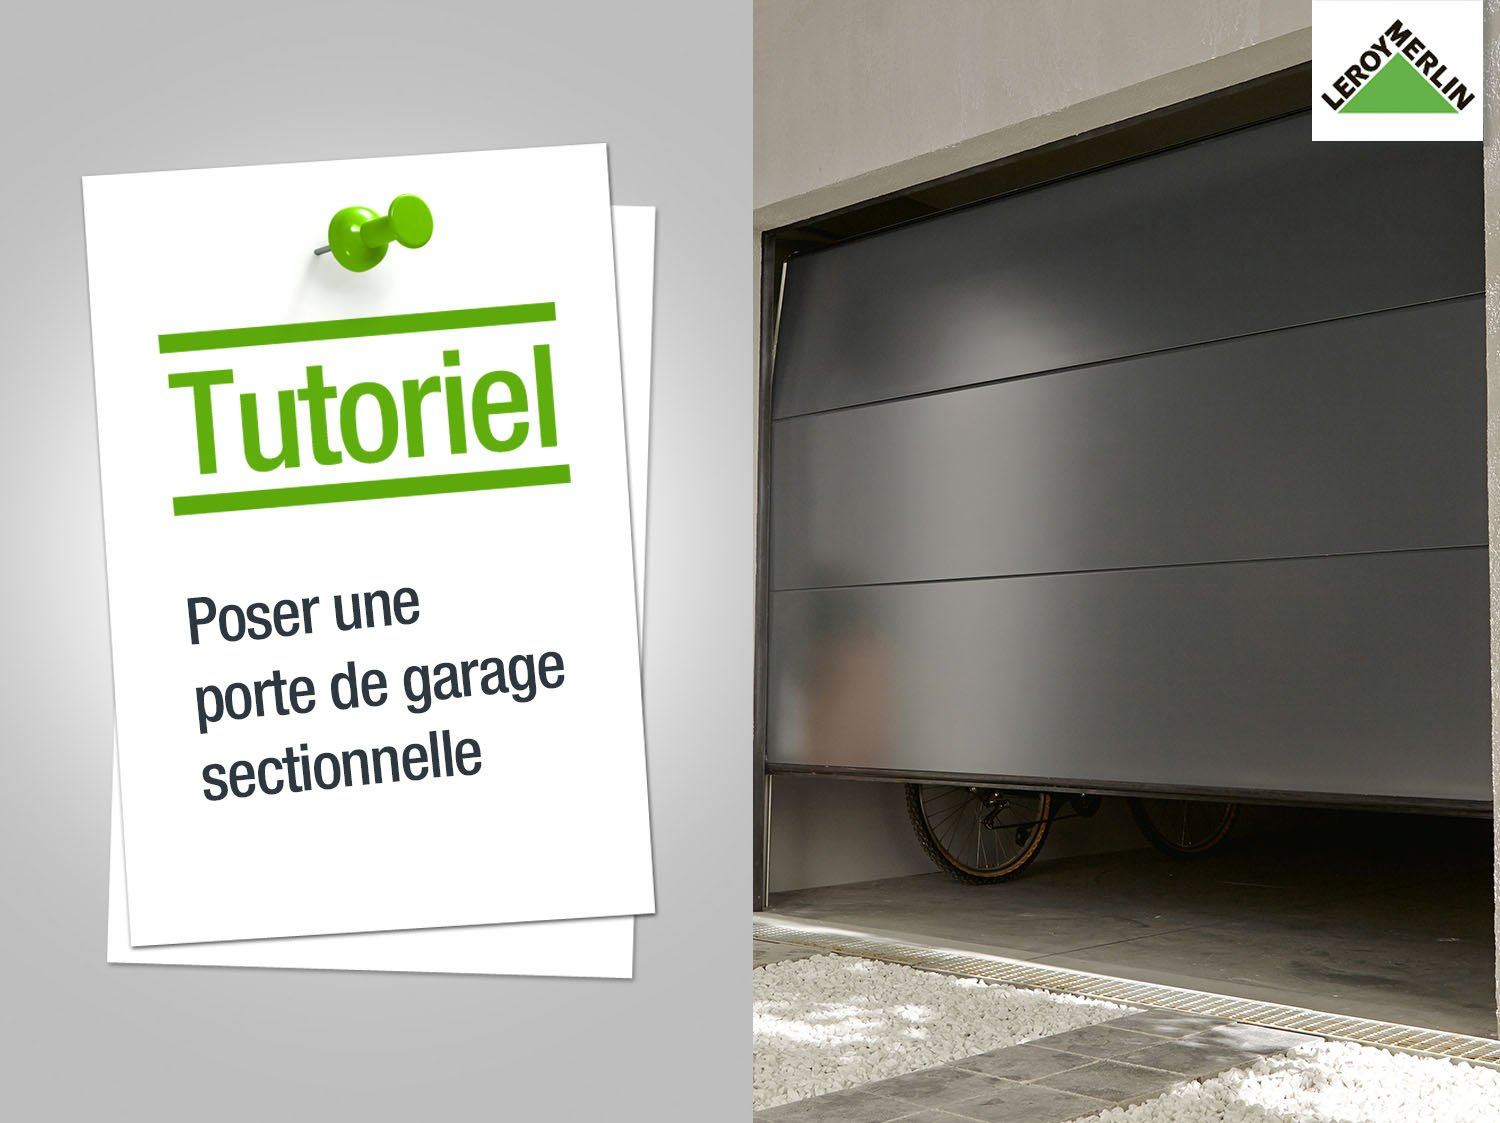 Porte de garage sectionnelle leroy merlin sur mesure - Leroy merlin porte garage sectionnelle ...